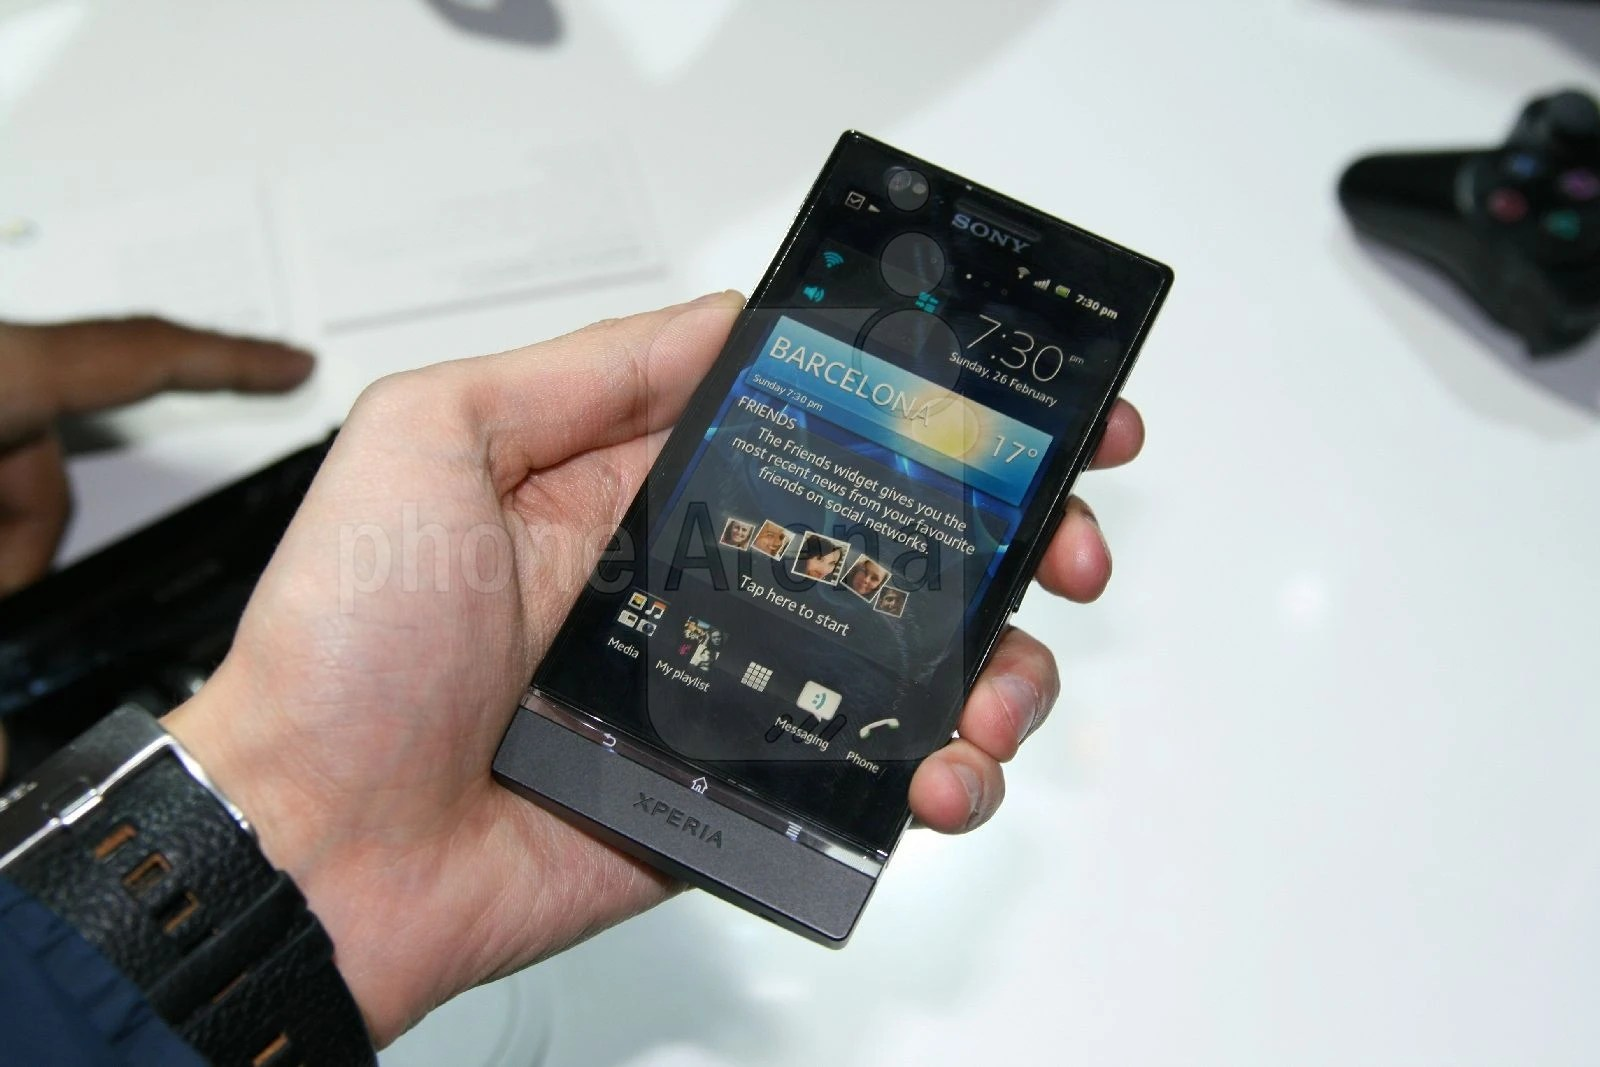 Sony Xperia P Libre Sony Xperia P Hands On Review Phonearena Reviews